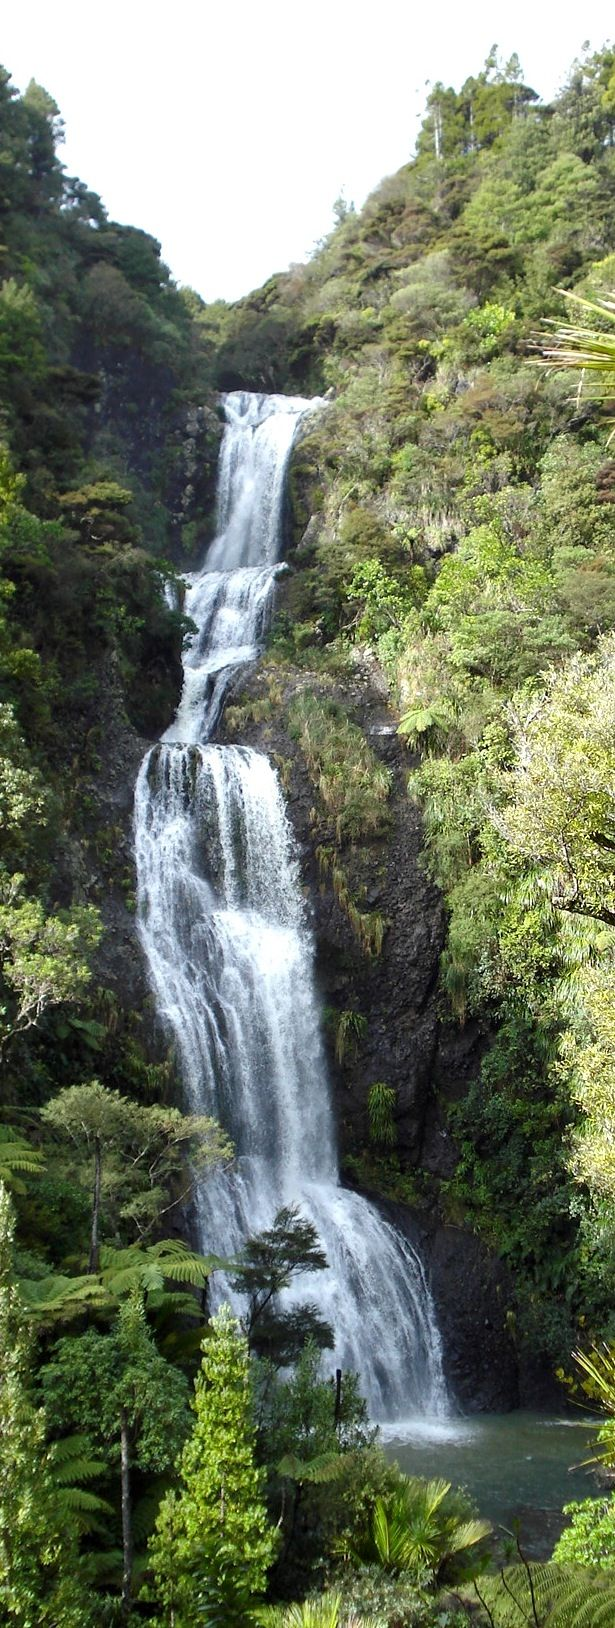 Local city guide—Auckland. Waitakere Ranges. (What we love: getting out doors and exploring waterfalls).